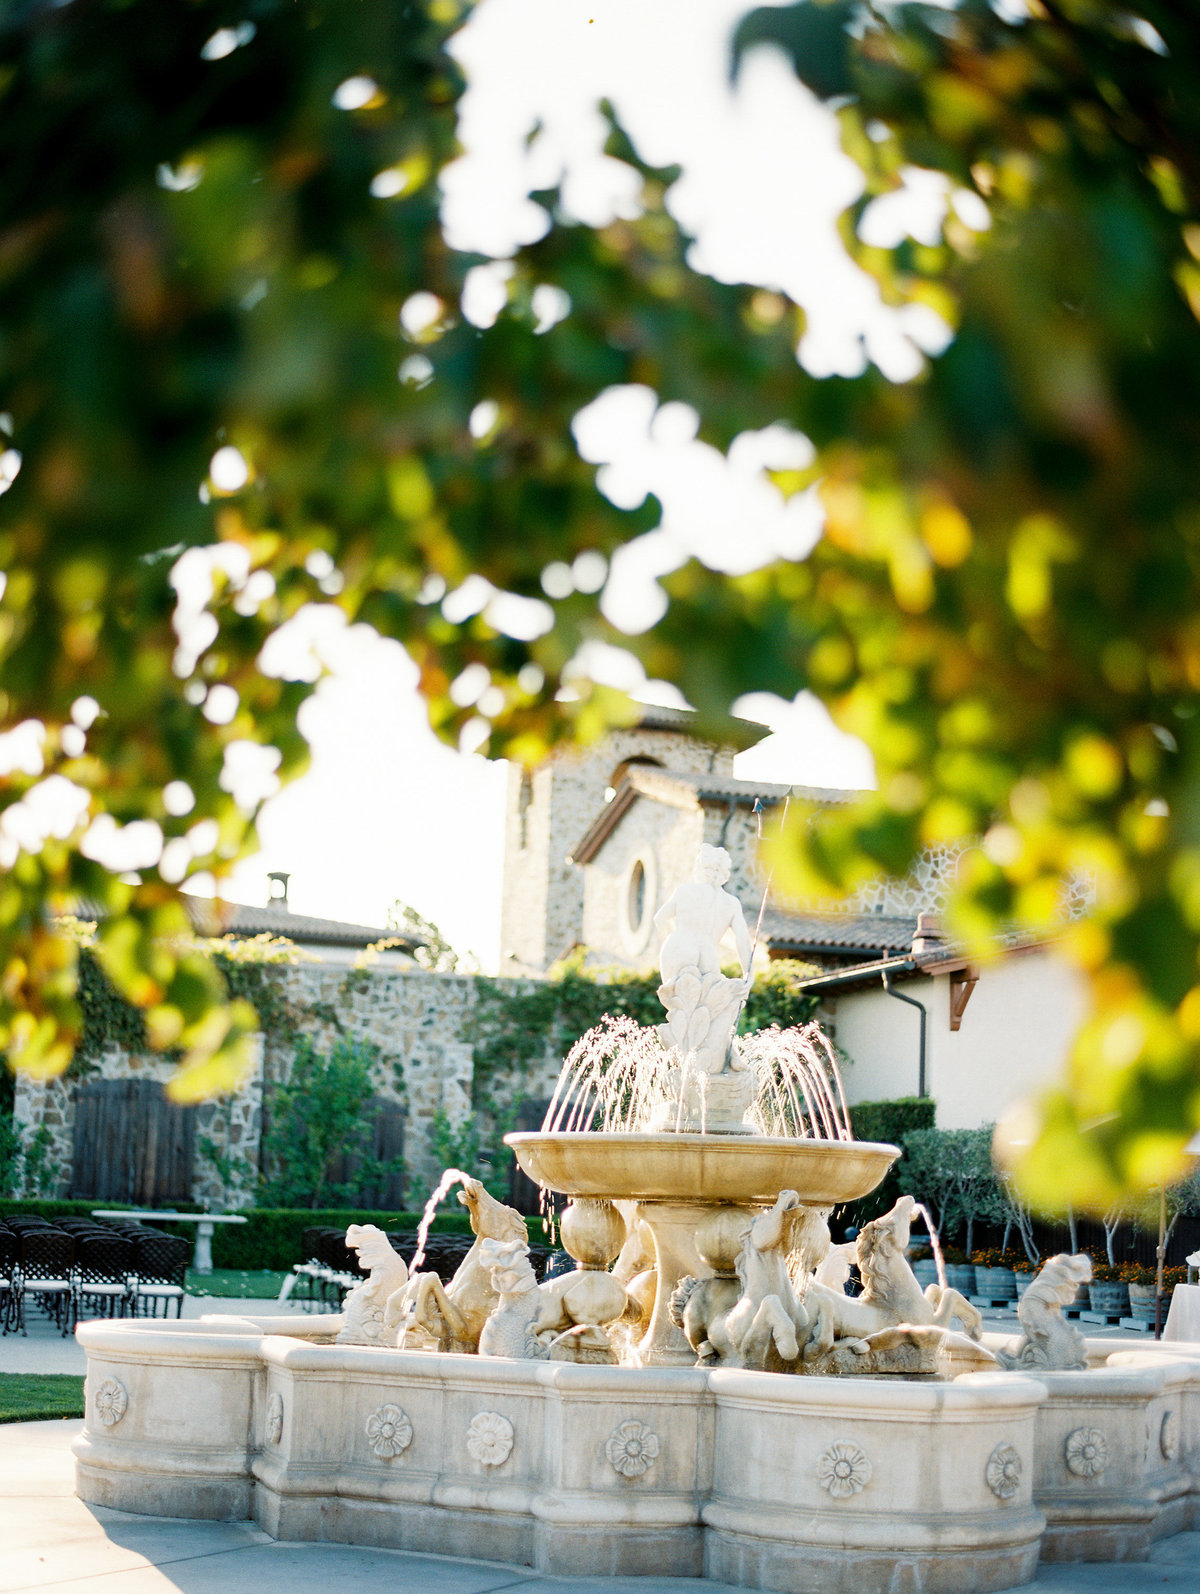 Natalie Bray Studios, Natalie Bray Photography, Southern California Wedding Photographer, Fine Art wedding, Destination Wedding Photographer, Sonoma Wedding Photographer-9